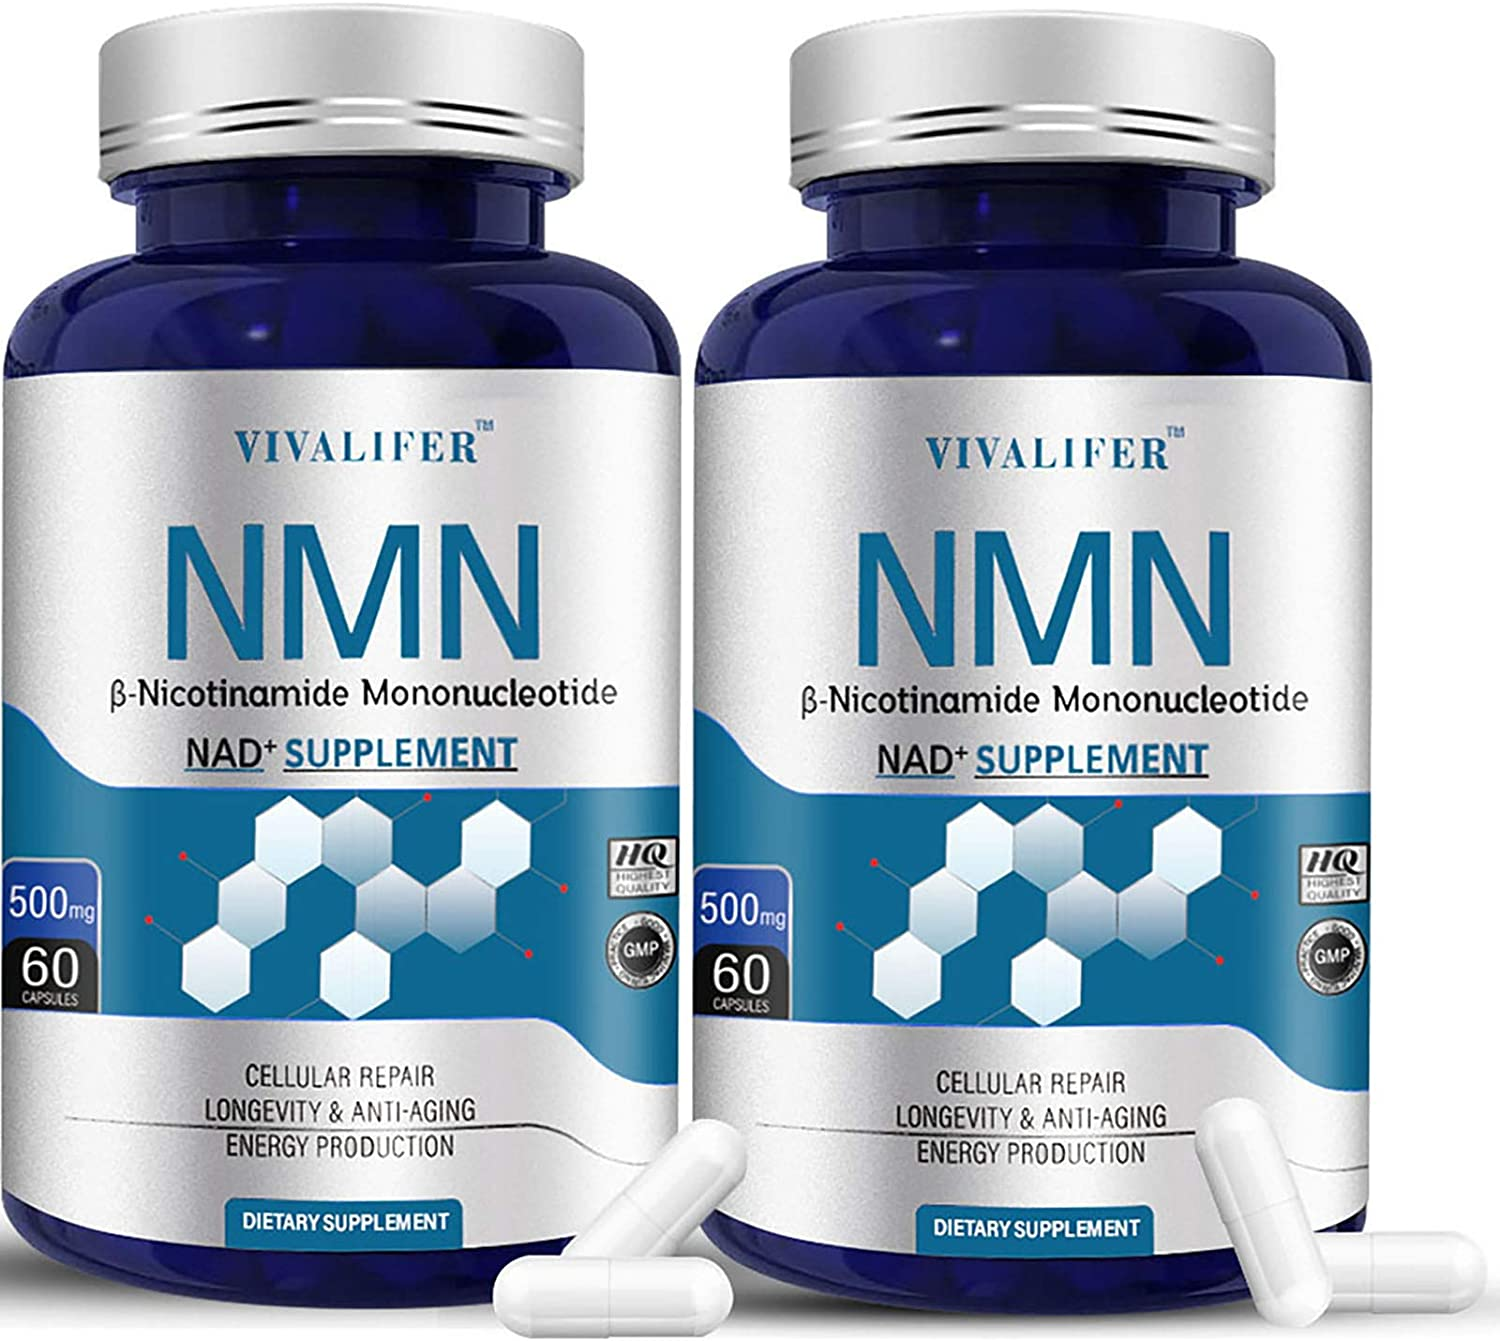 2 Credence Pack NMN Supplement 500MG Mononucleotide Nicotinamide Max 52% OFF Capsule